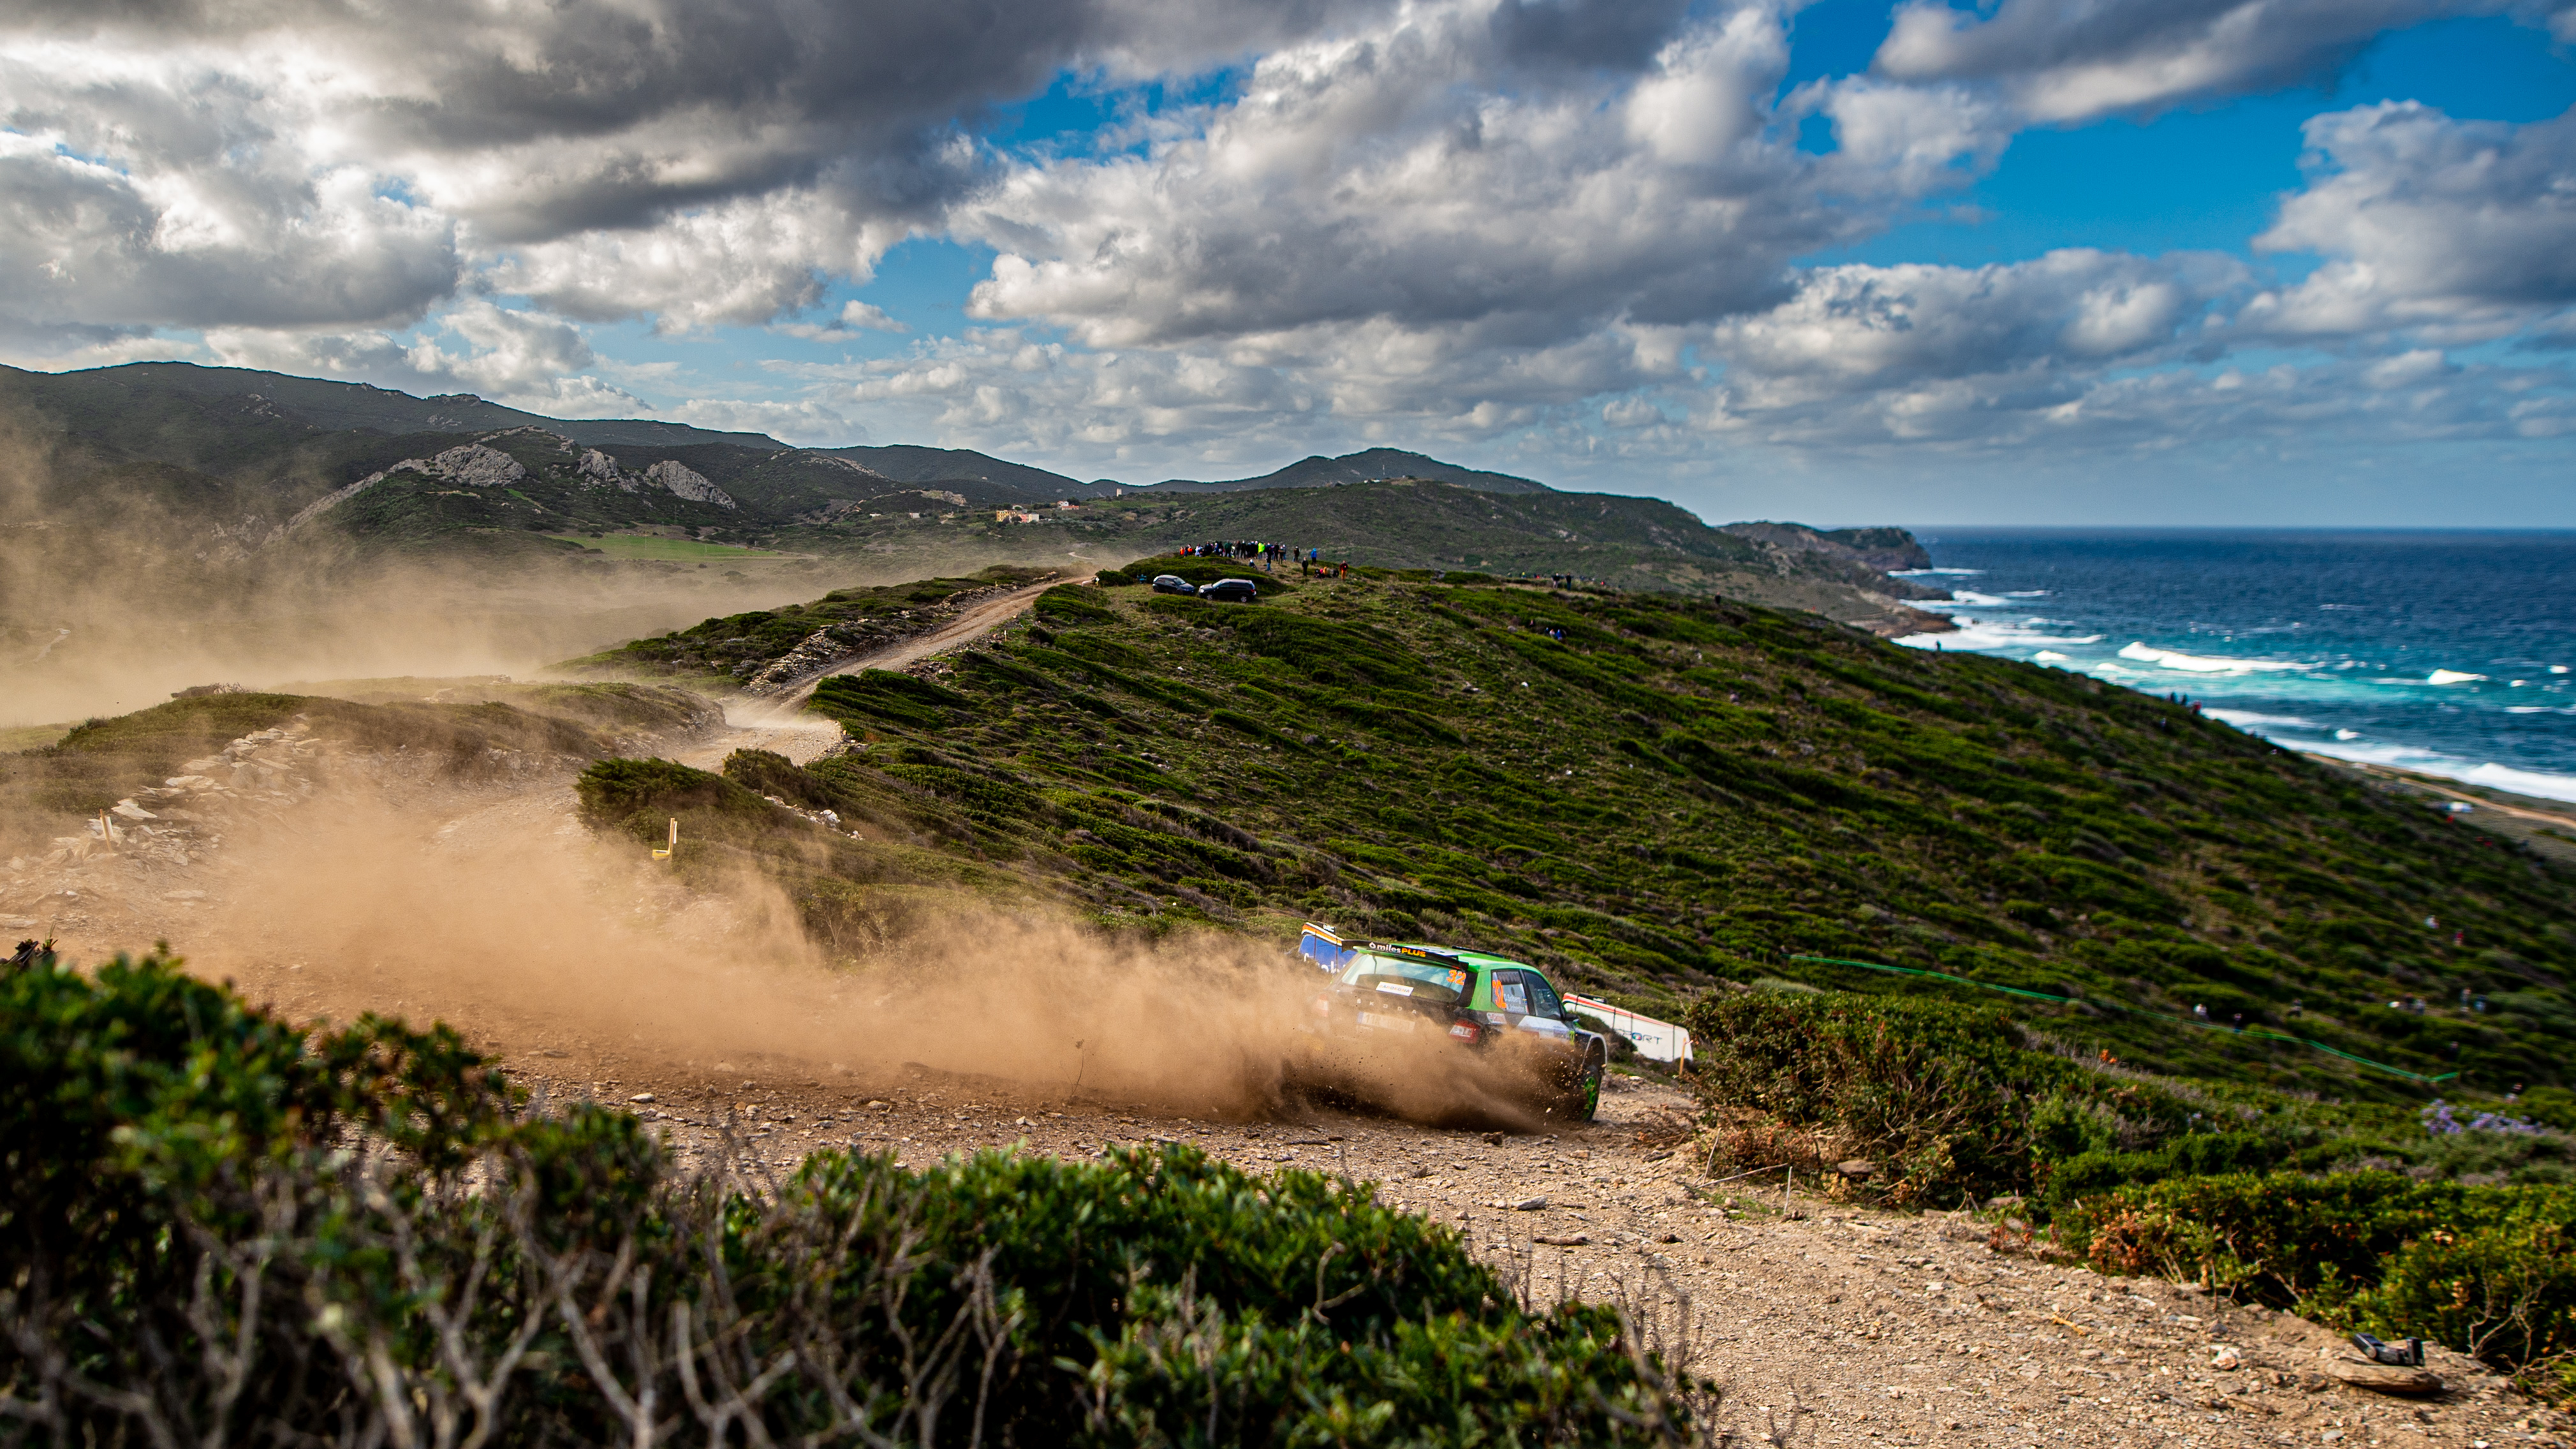 Rally Italia Sardegna: SKODA privateer Pontus Tidemand wins WRC2 and extends overall lead - Image 8